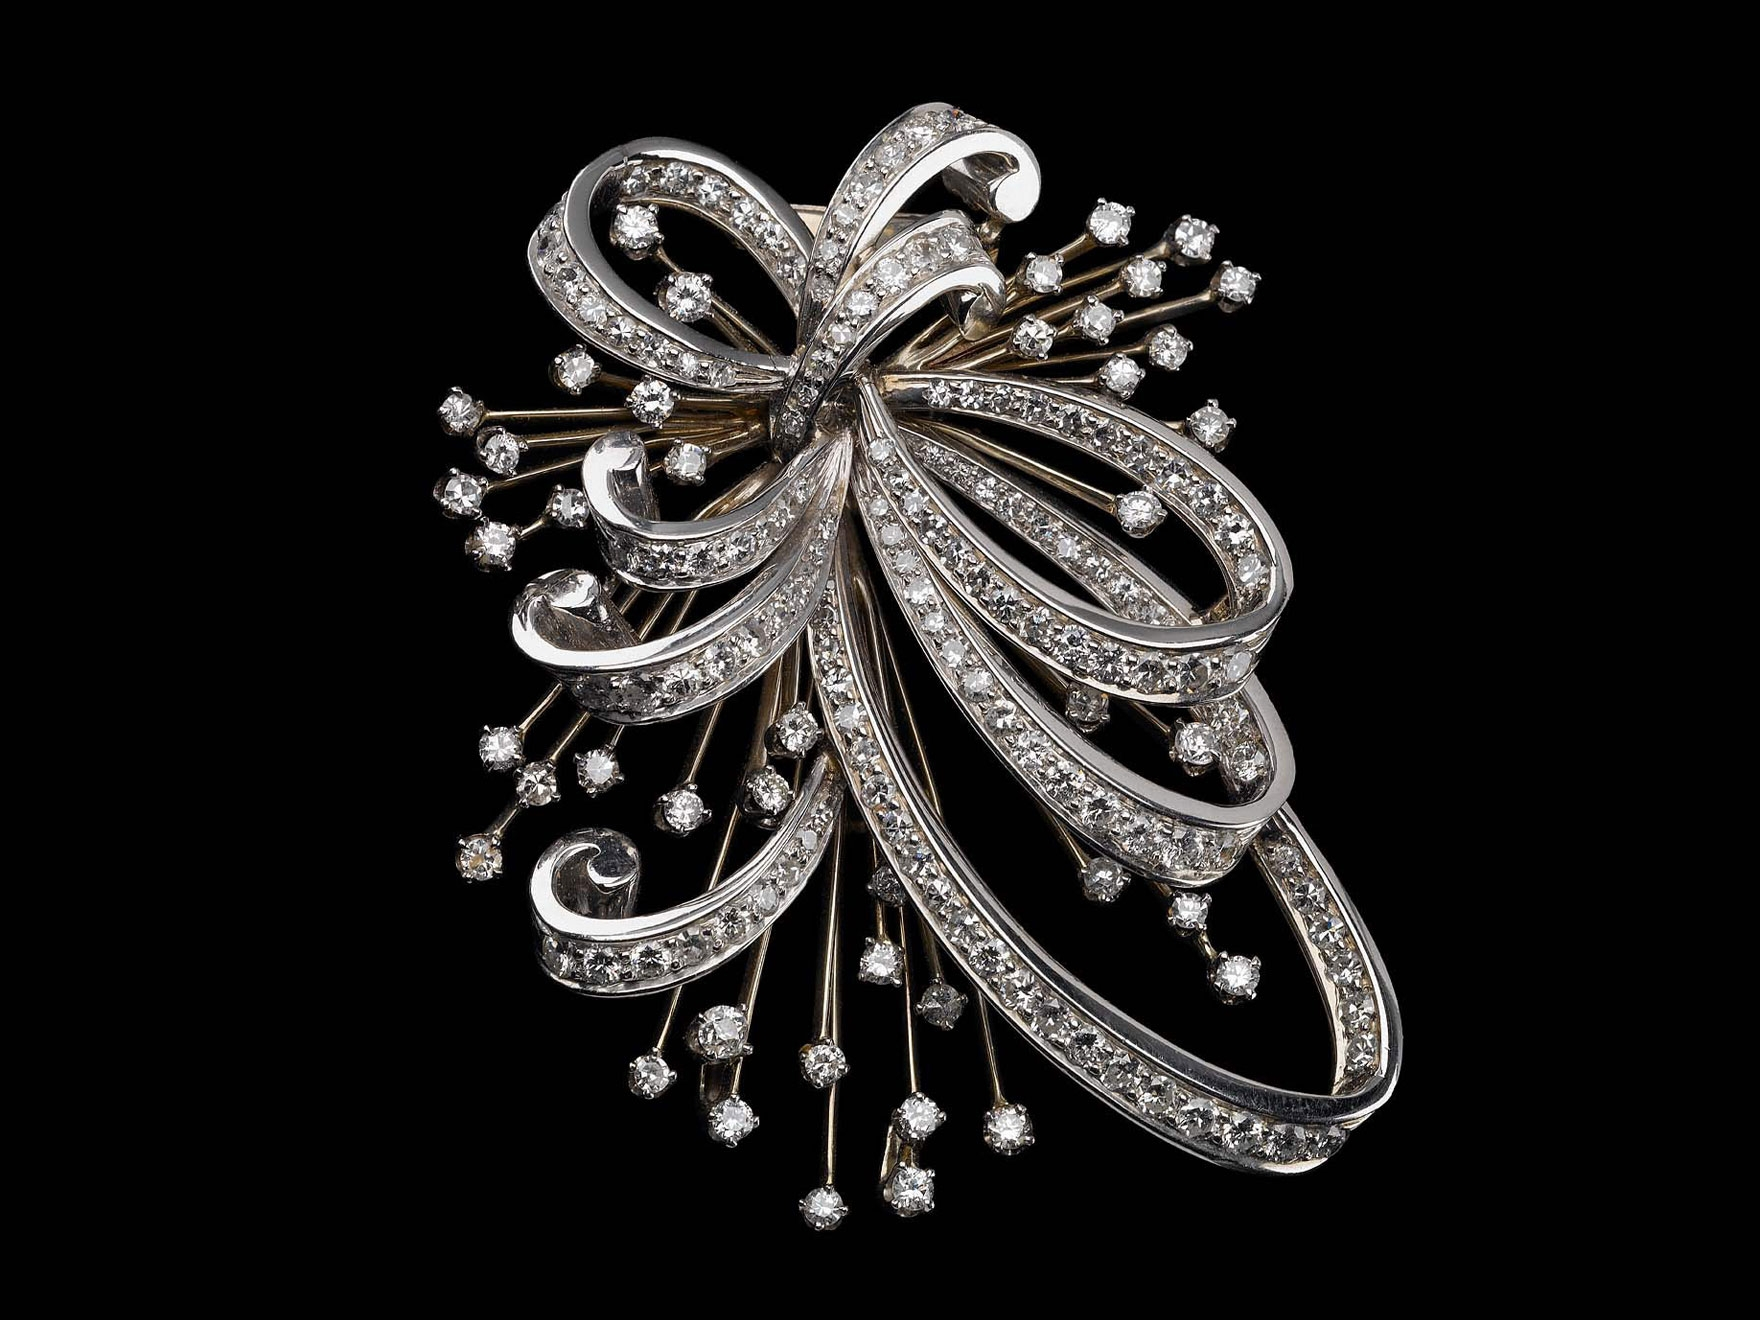 Early 1950s white gold and diamond brooch from Trabert & Hoeffer, Inc.-Mauboussin